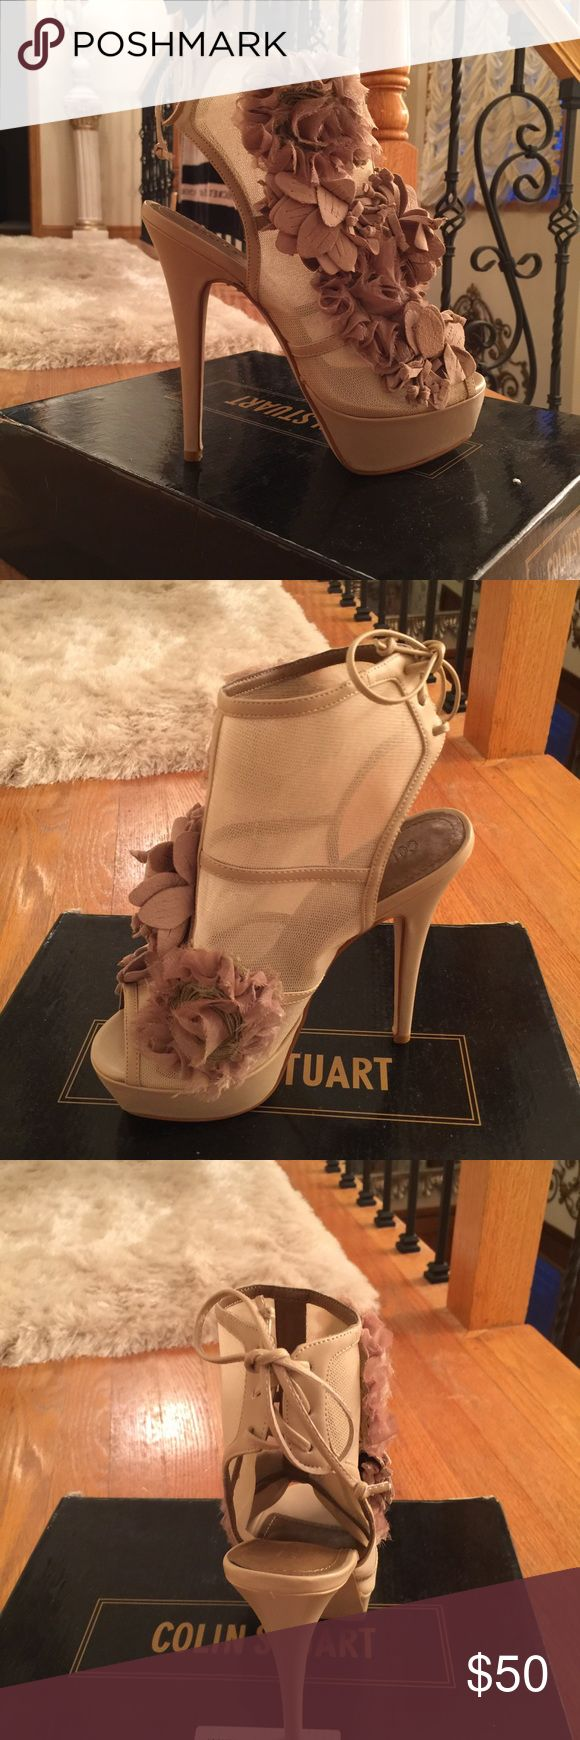 Victoria's Secret Colin Stuart Nude heels Never worn!!! Size 6. Very fashionable. Vs Colin Stuart heels Colin Stuart Shoes Heels